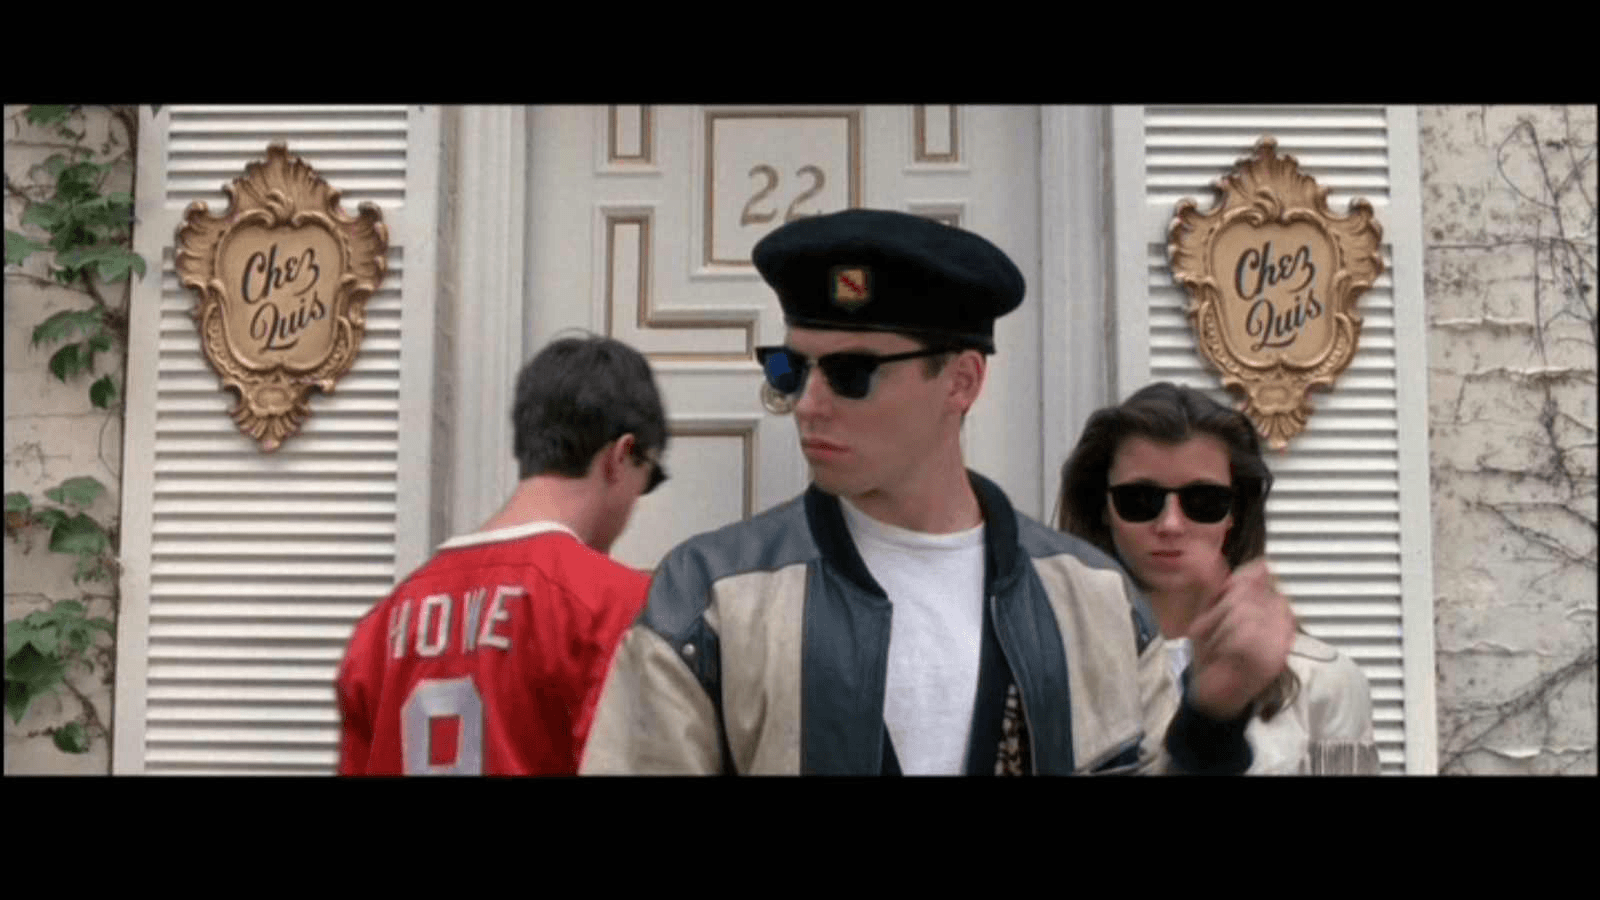 Ferris Bueller's Day Off image Farris HD wallpapers and backgrounds